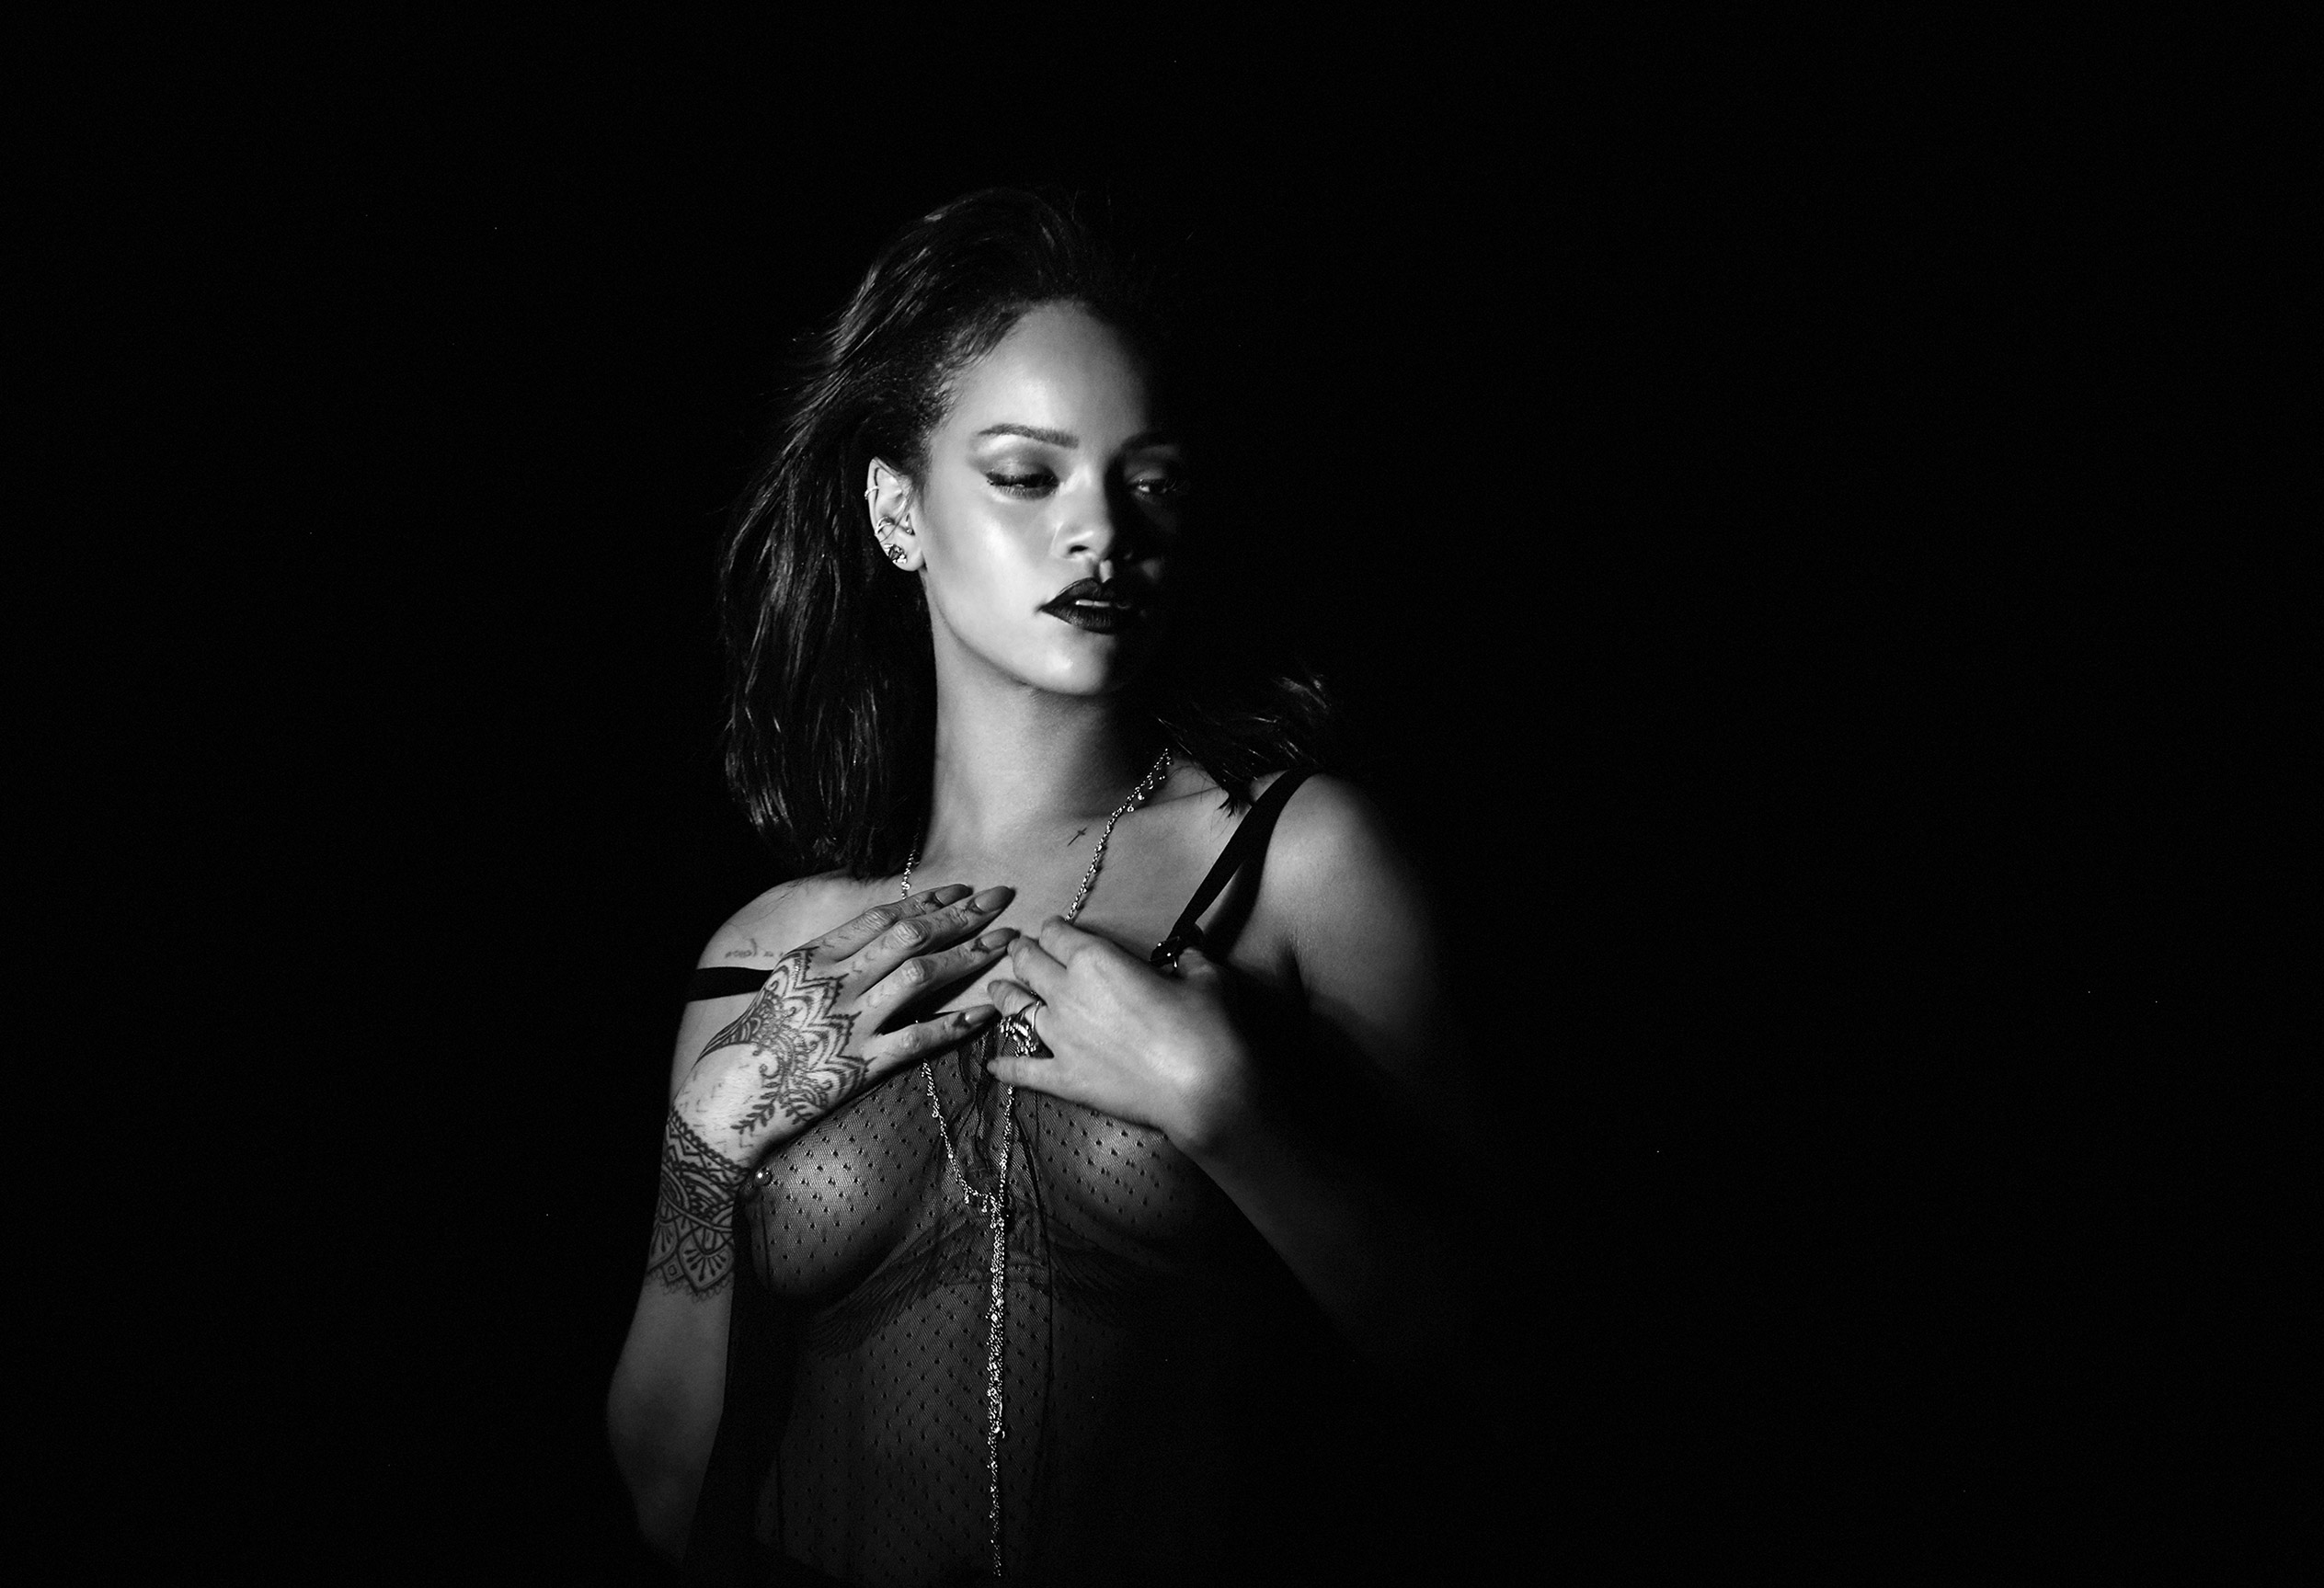 Kiss It Better / Rihanna by Dennis Leupold